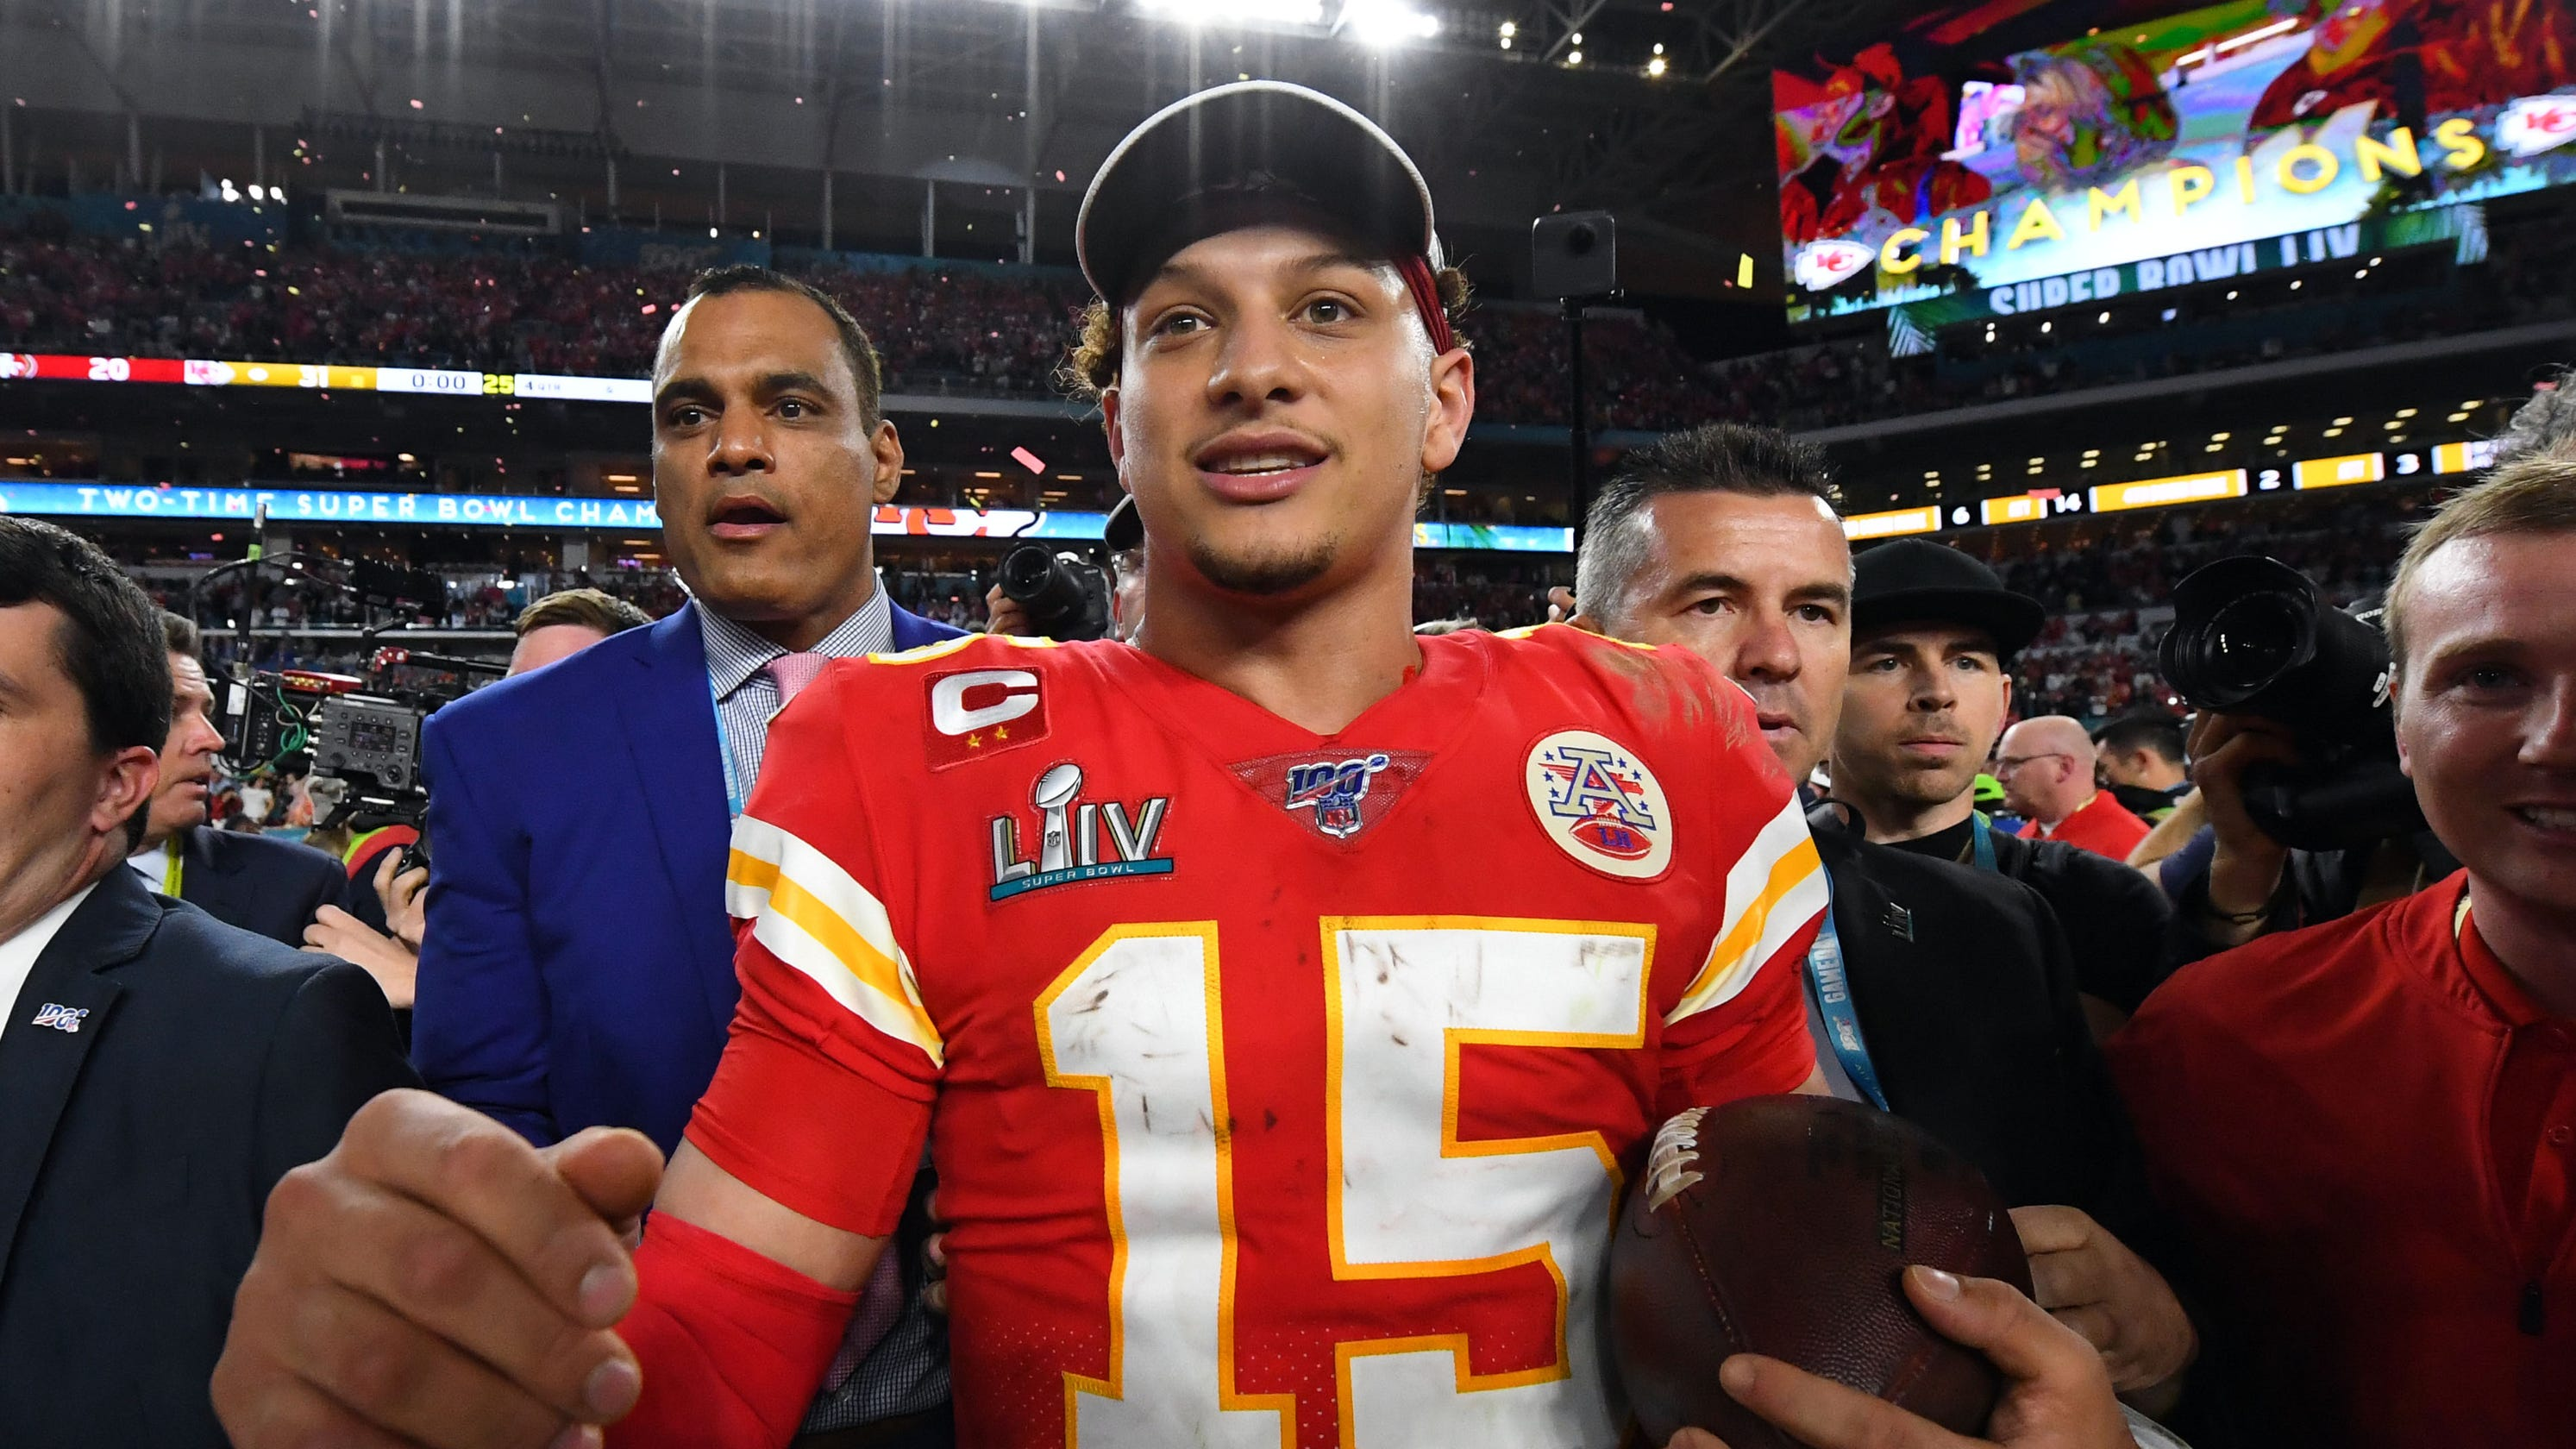 Patrick Mahomes and 25 other top athletes age 25 and under